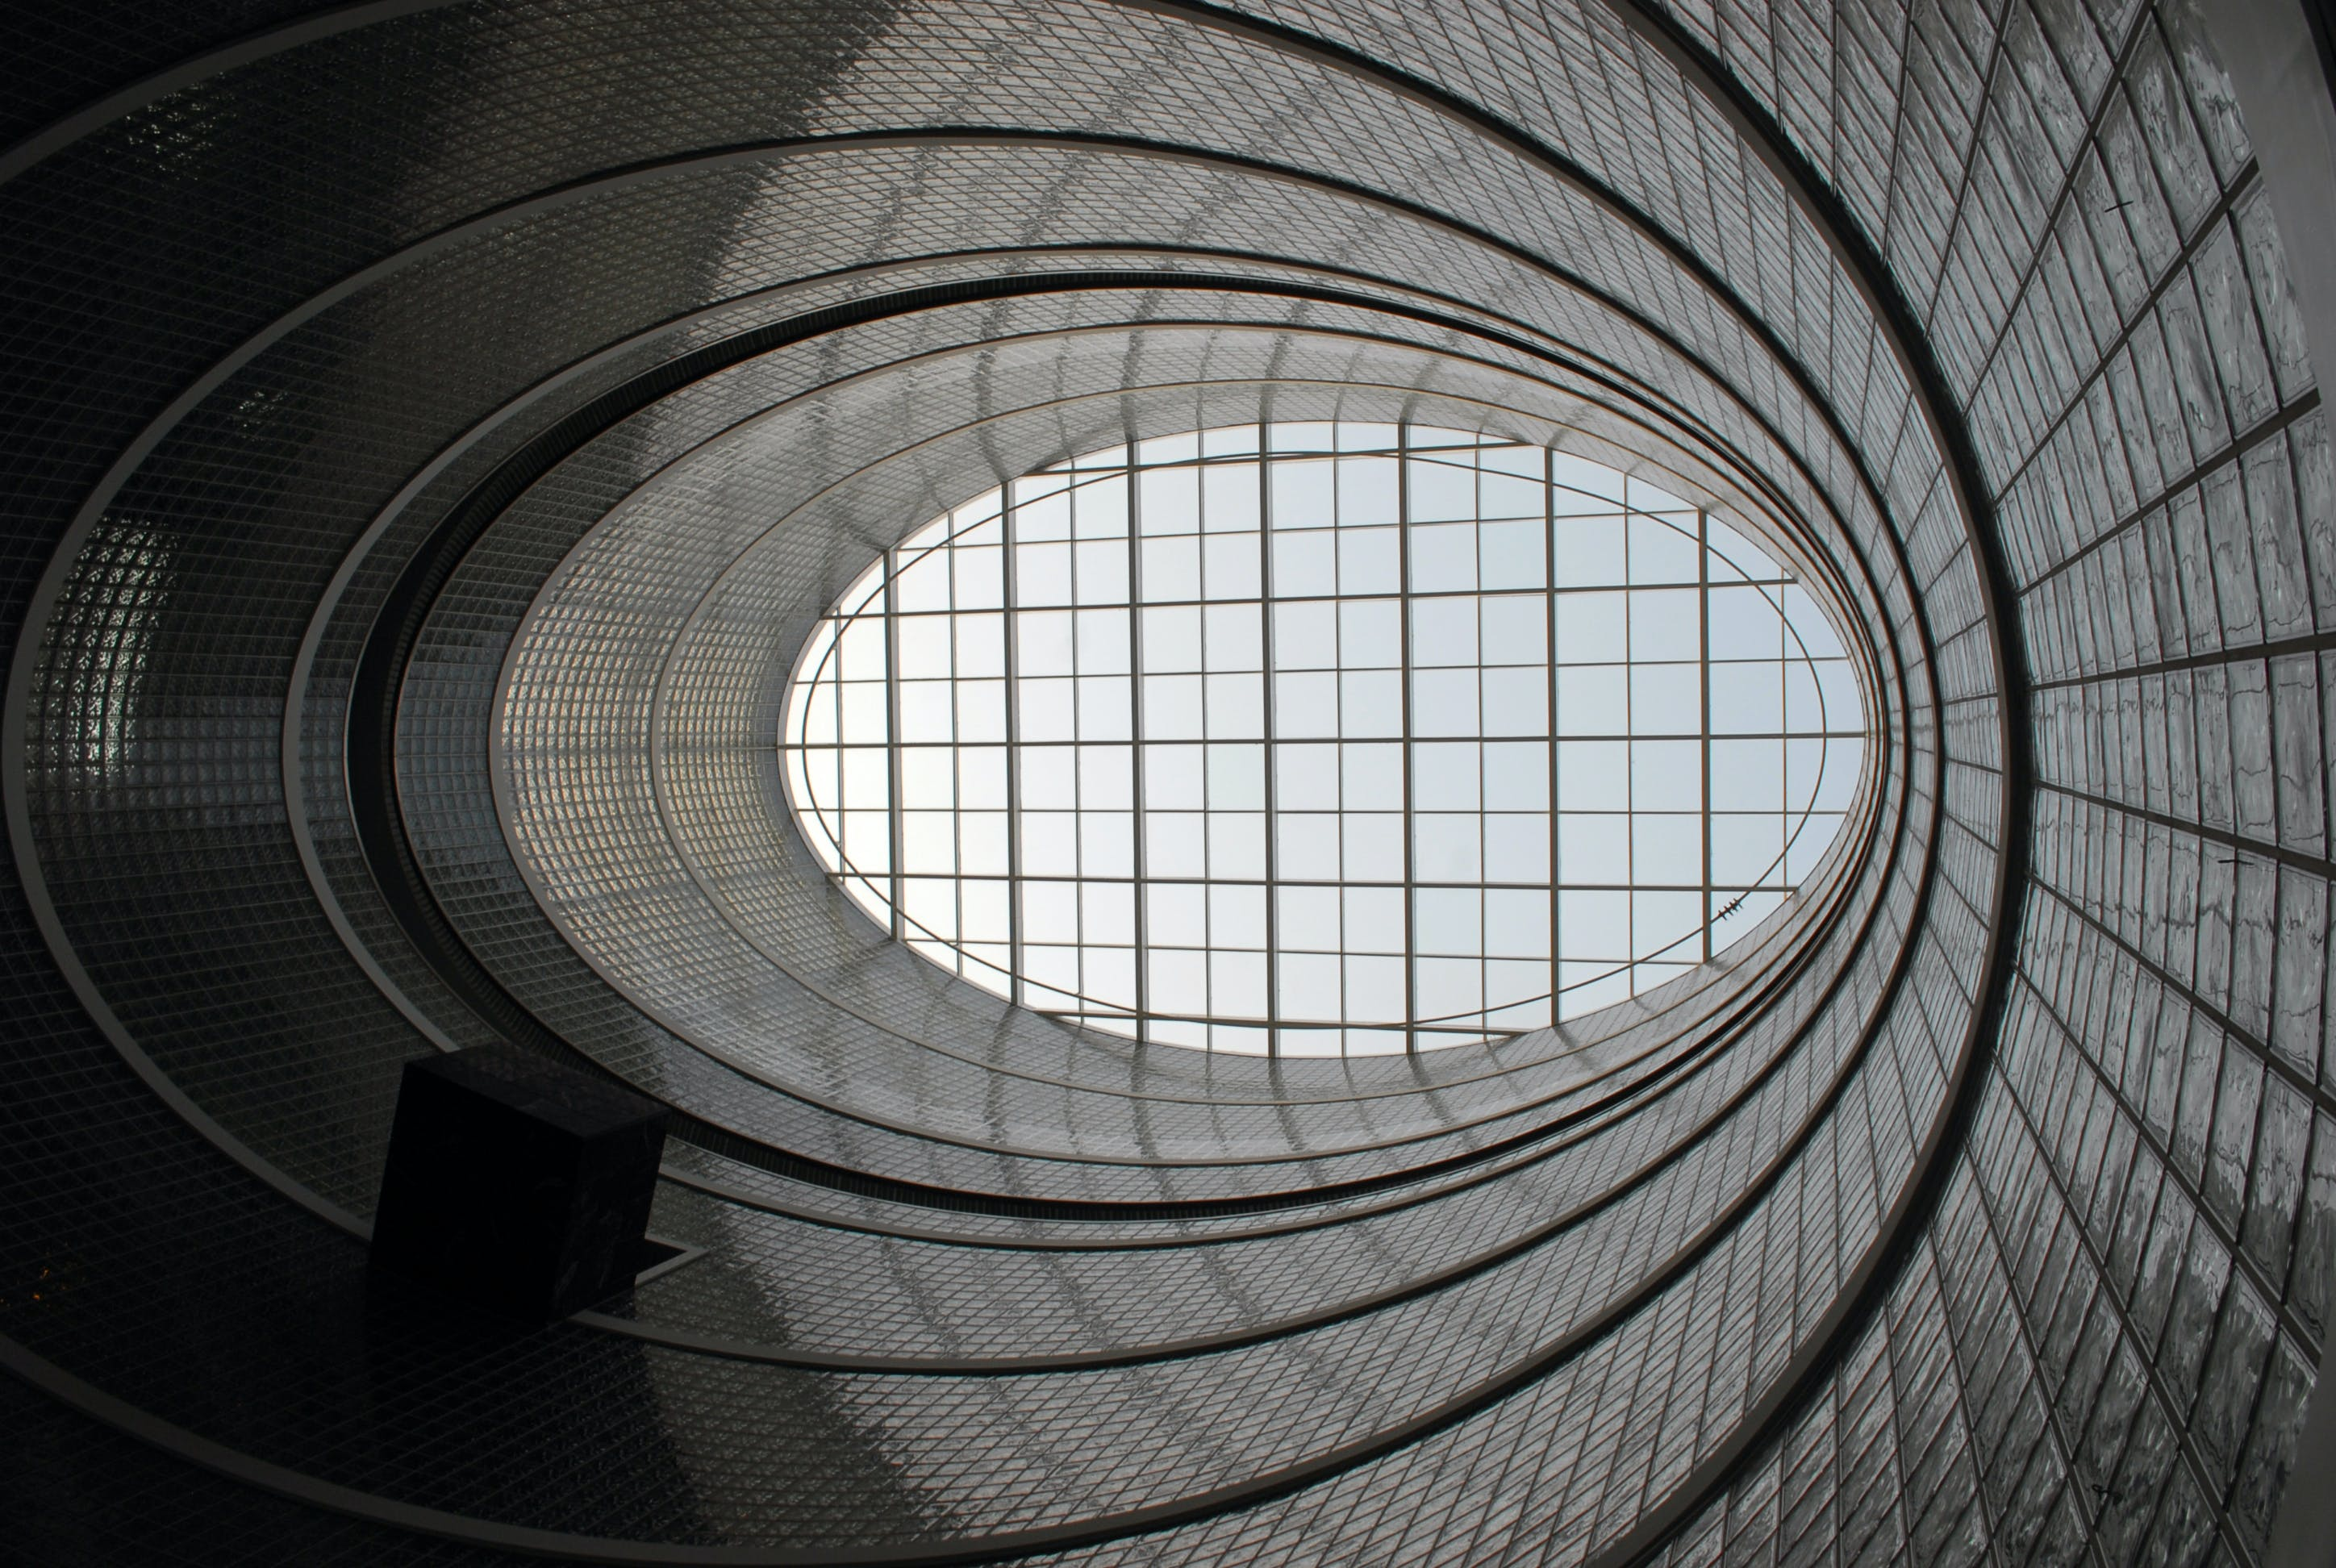 Free stock photo of architectural design, glass block, lima, oval